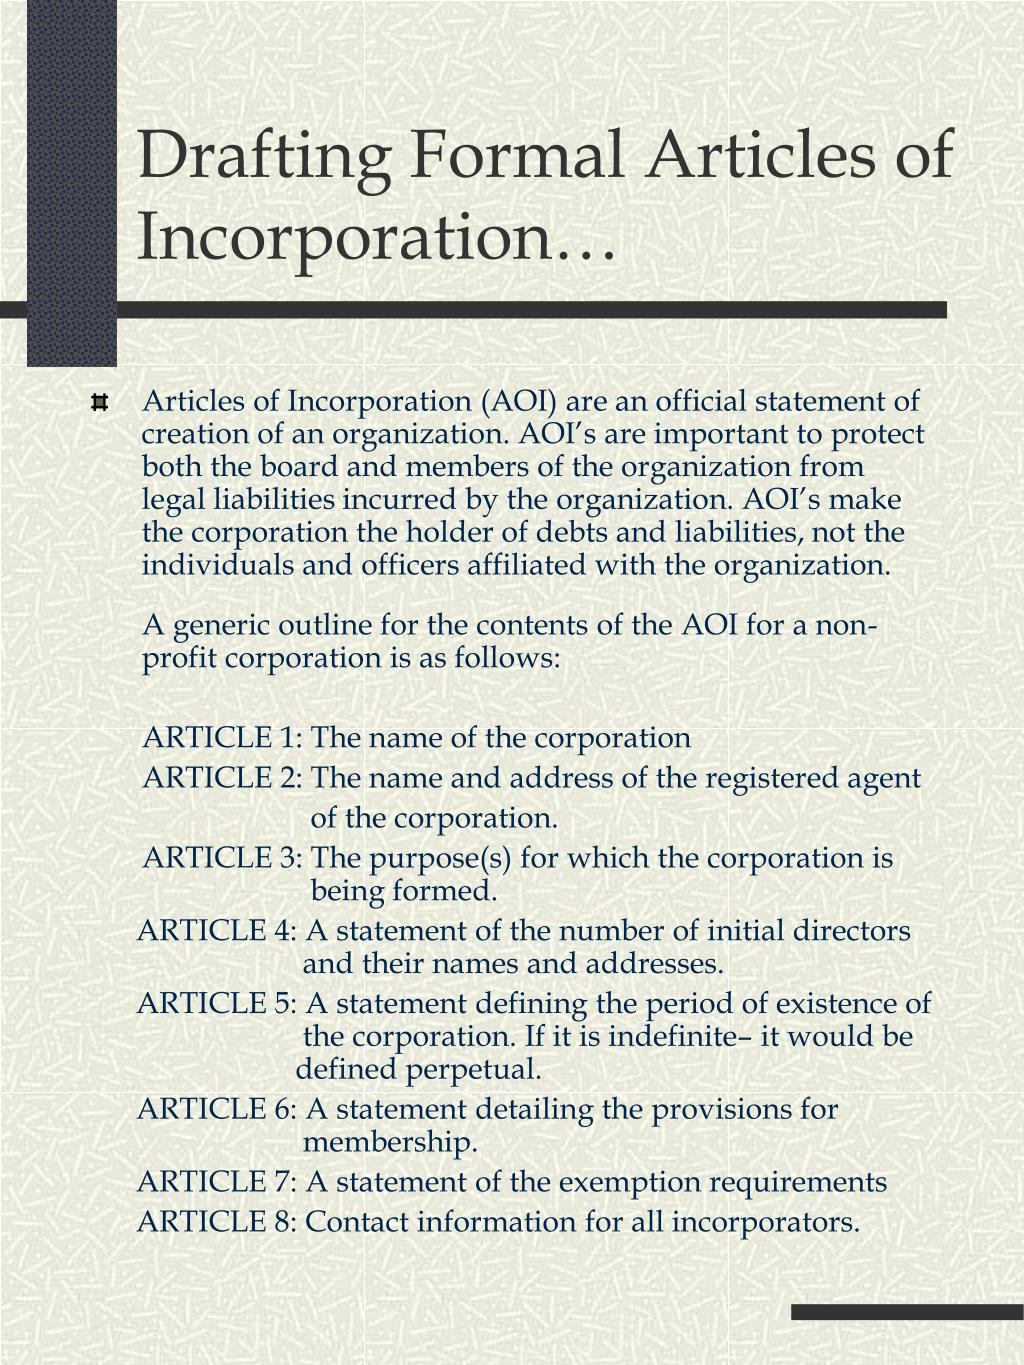 Drafting Formal Articles of Incorporation…